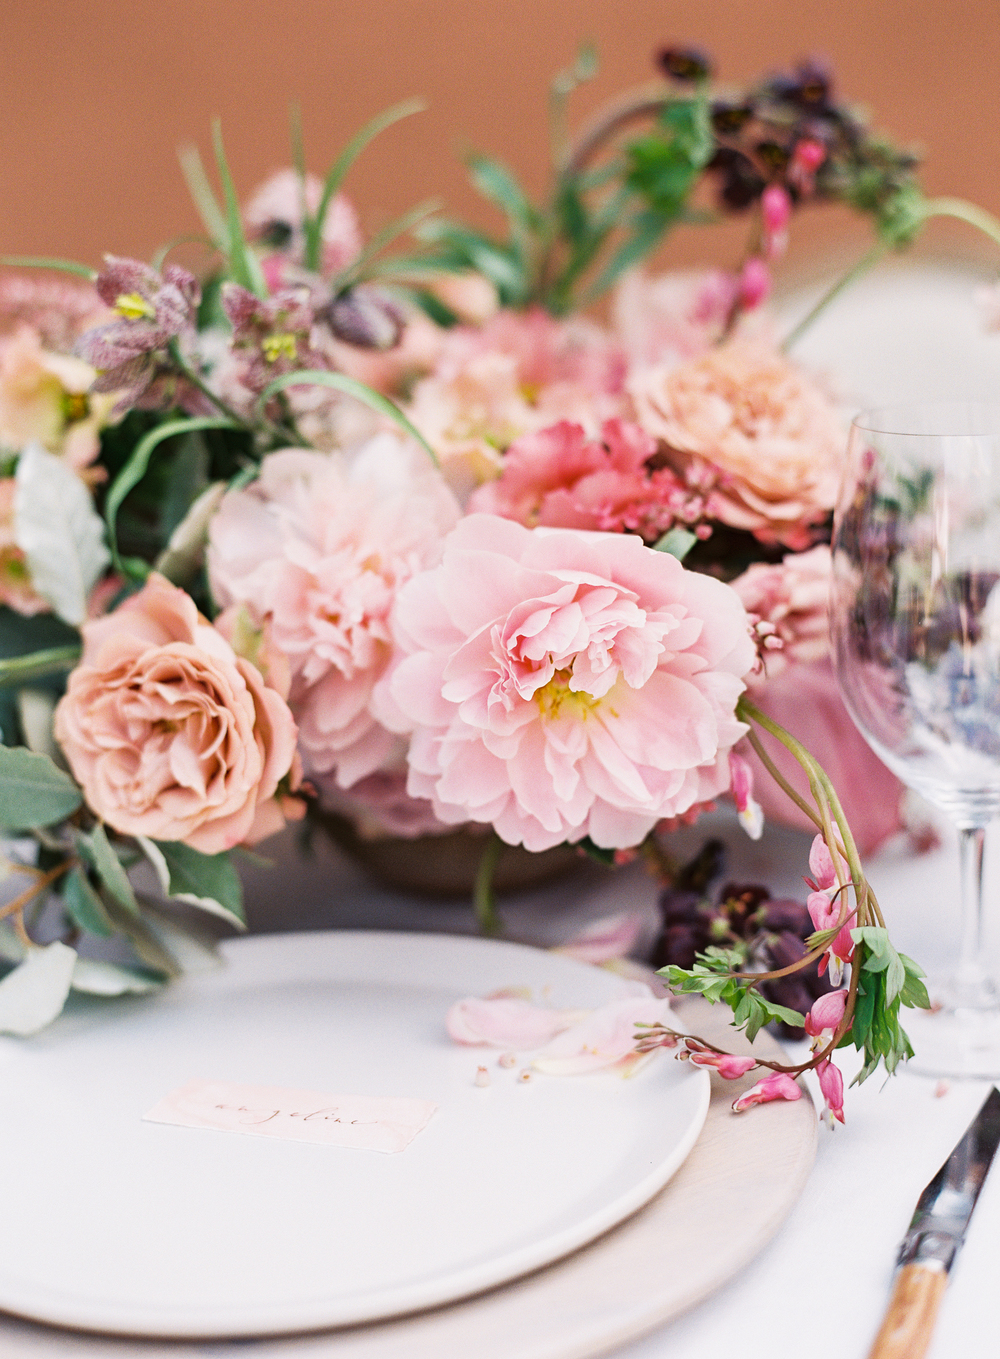 terracotta pink flowers and table setting | terracotta pink wedding inspiration designed by The Wildflowers | follow us on instagram: @ thewildflowers.events